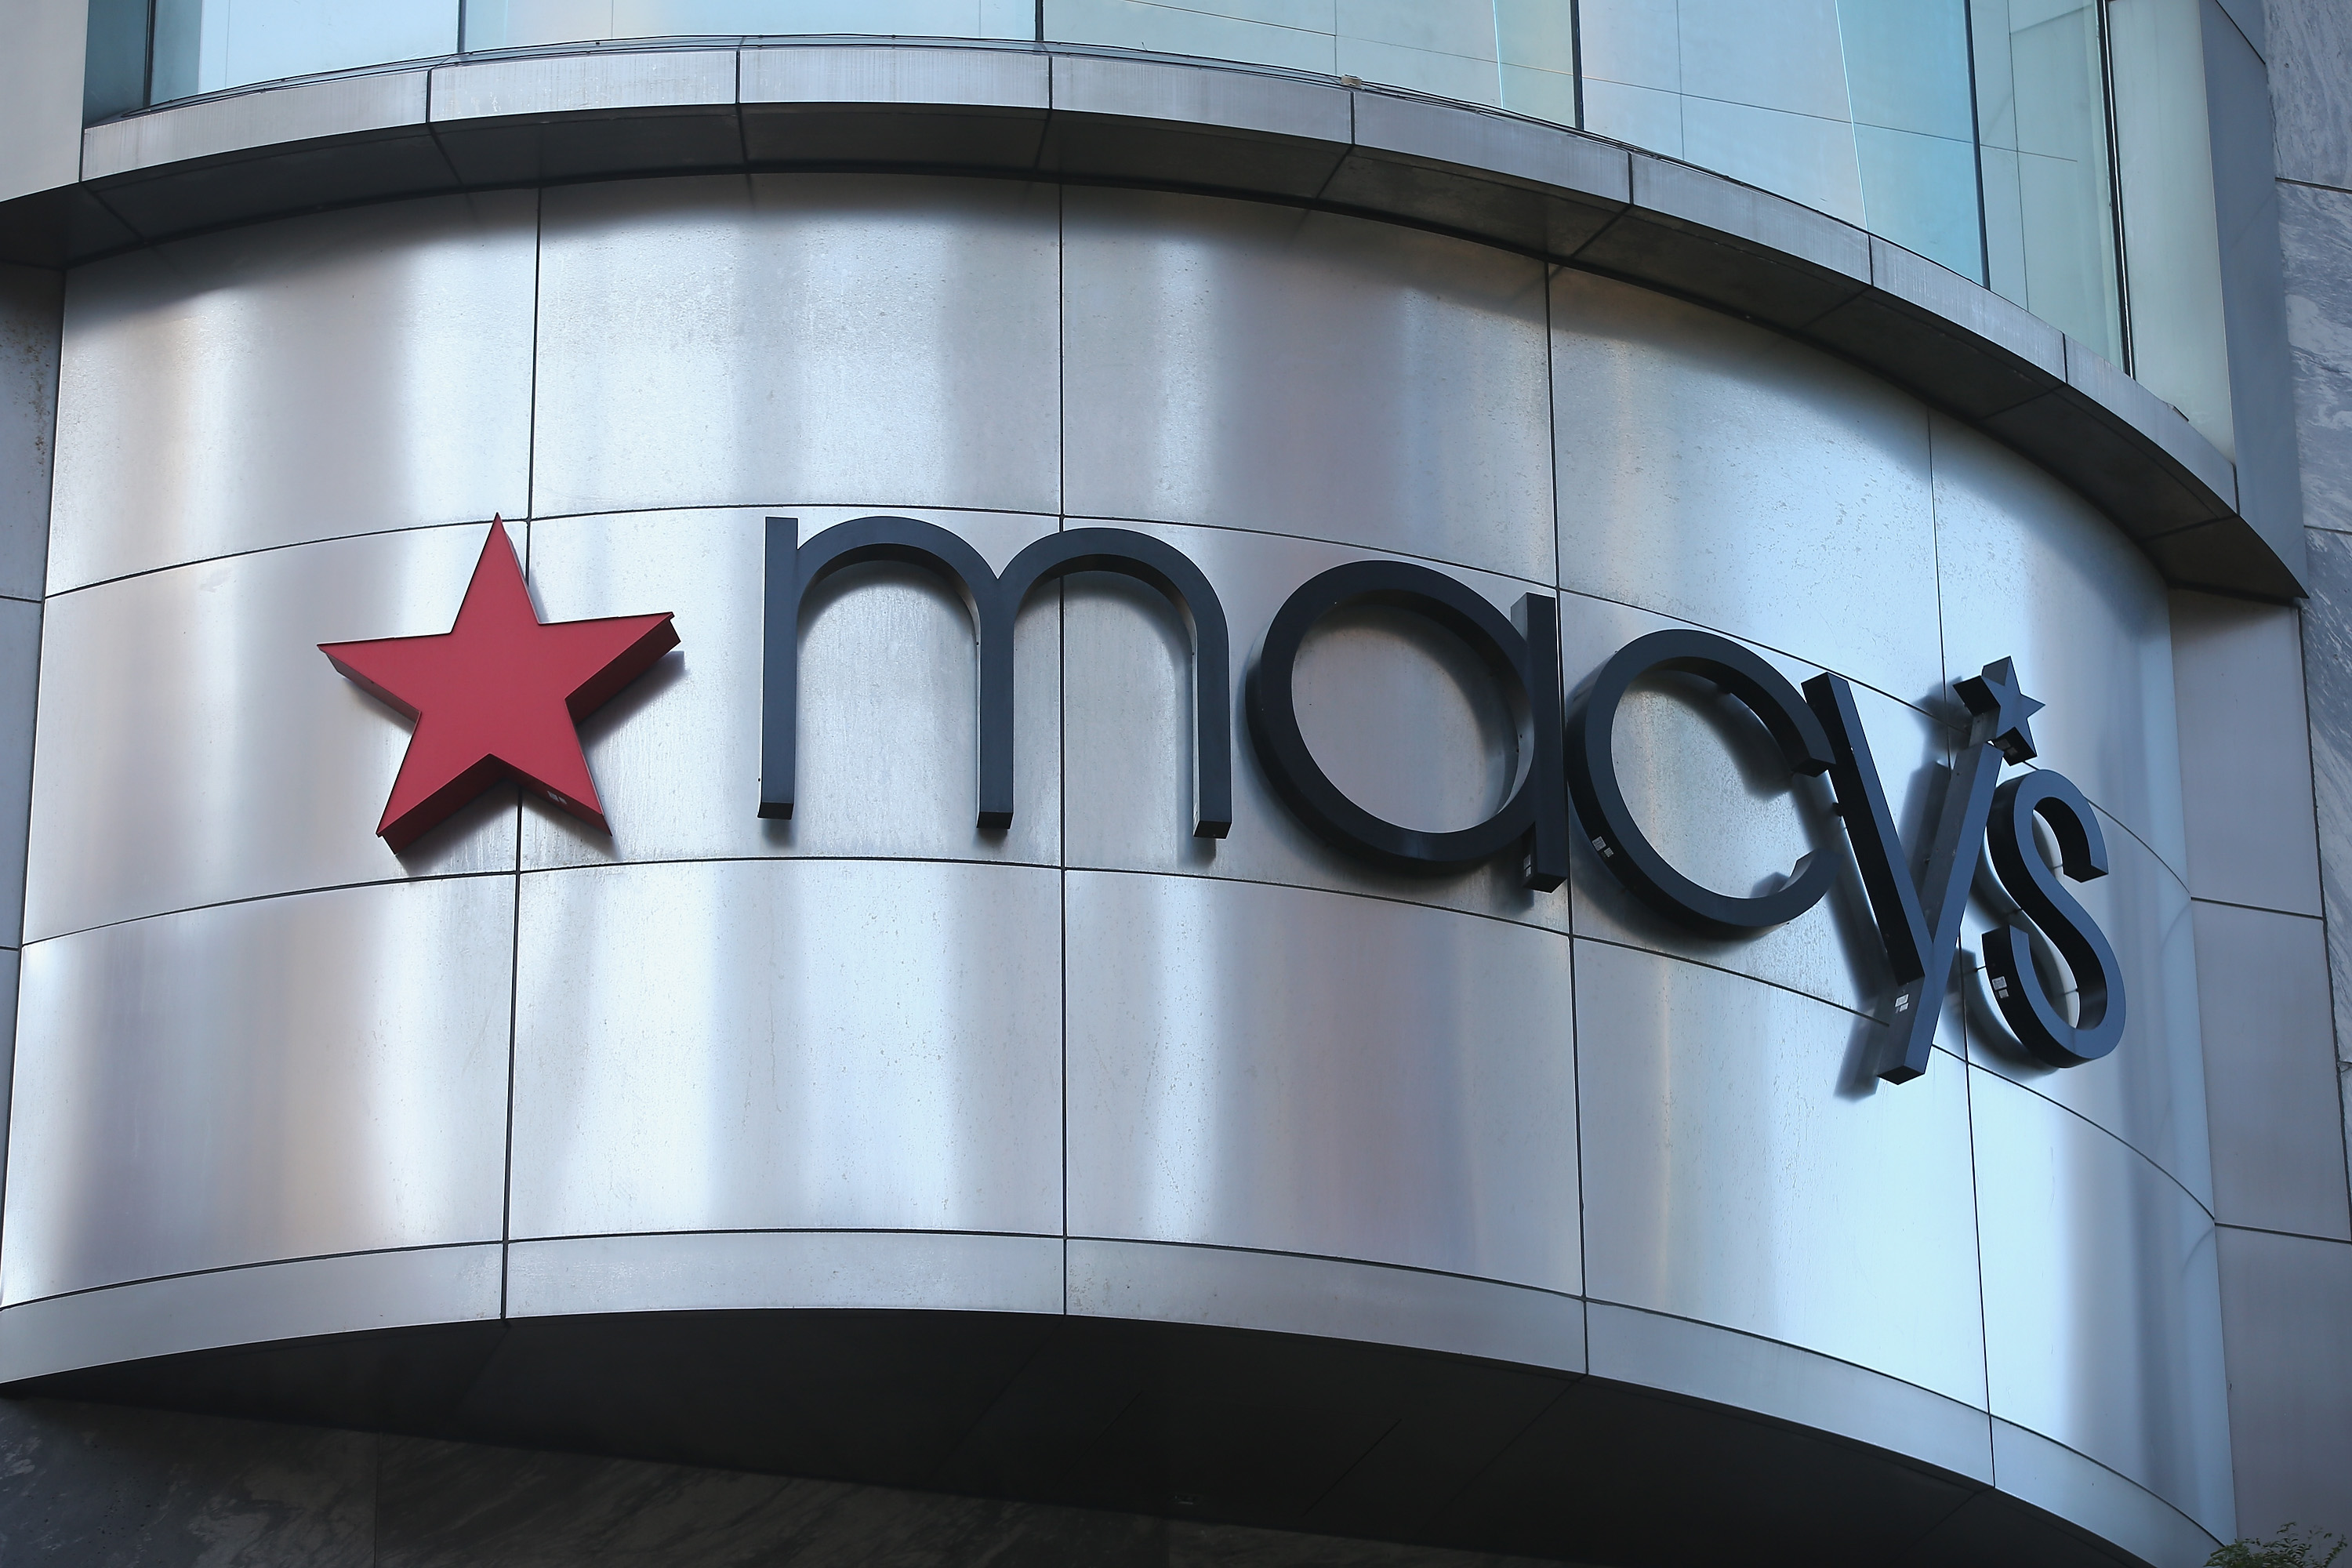 A sign hangs above Macy's in the Magnificent Mile shopping district on August 14, 2013 in Chicago, Illinois.